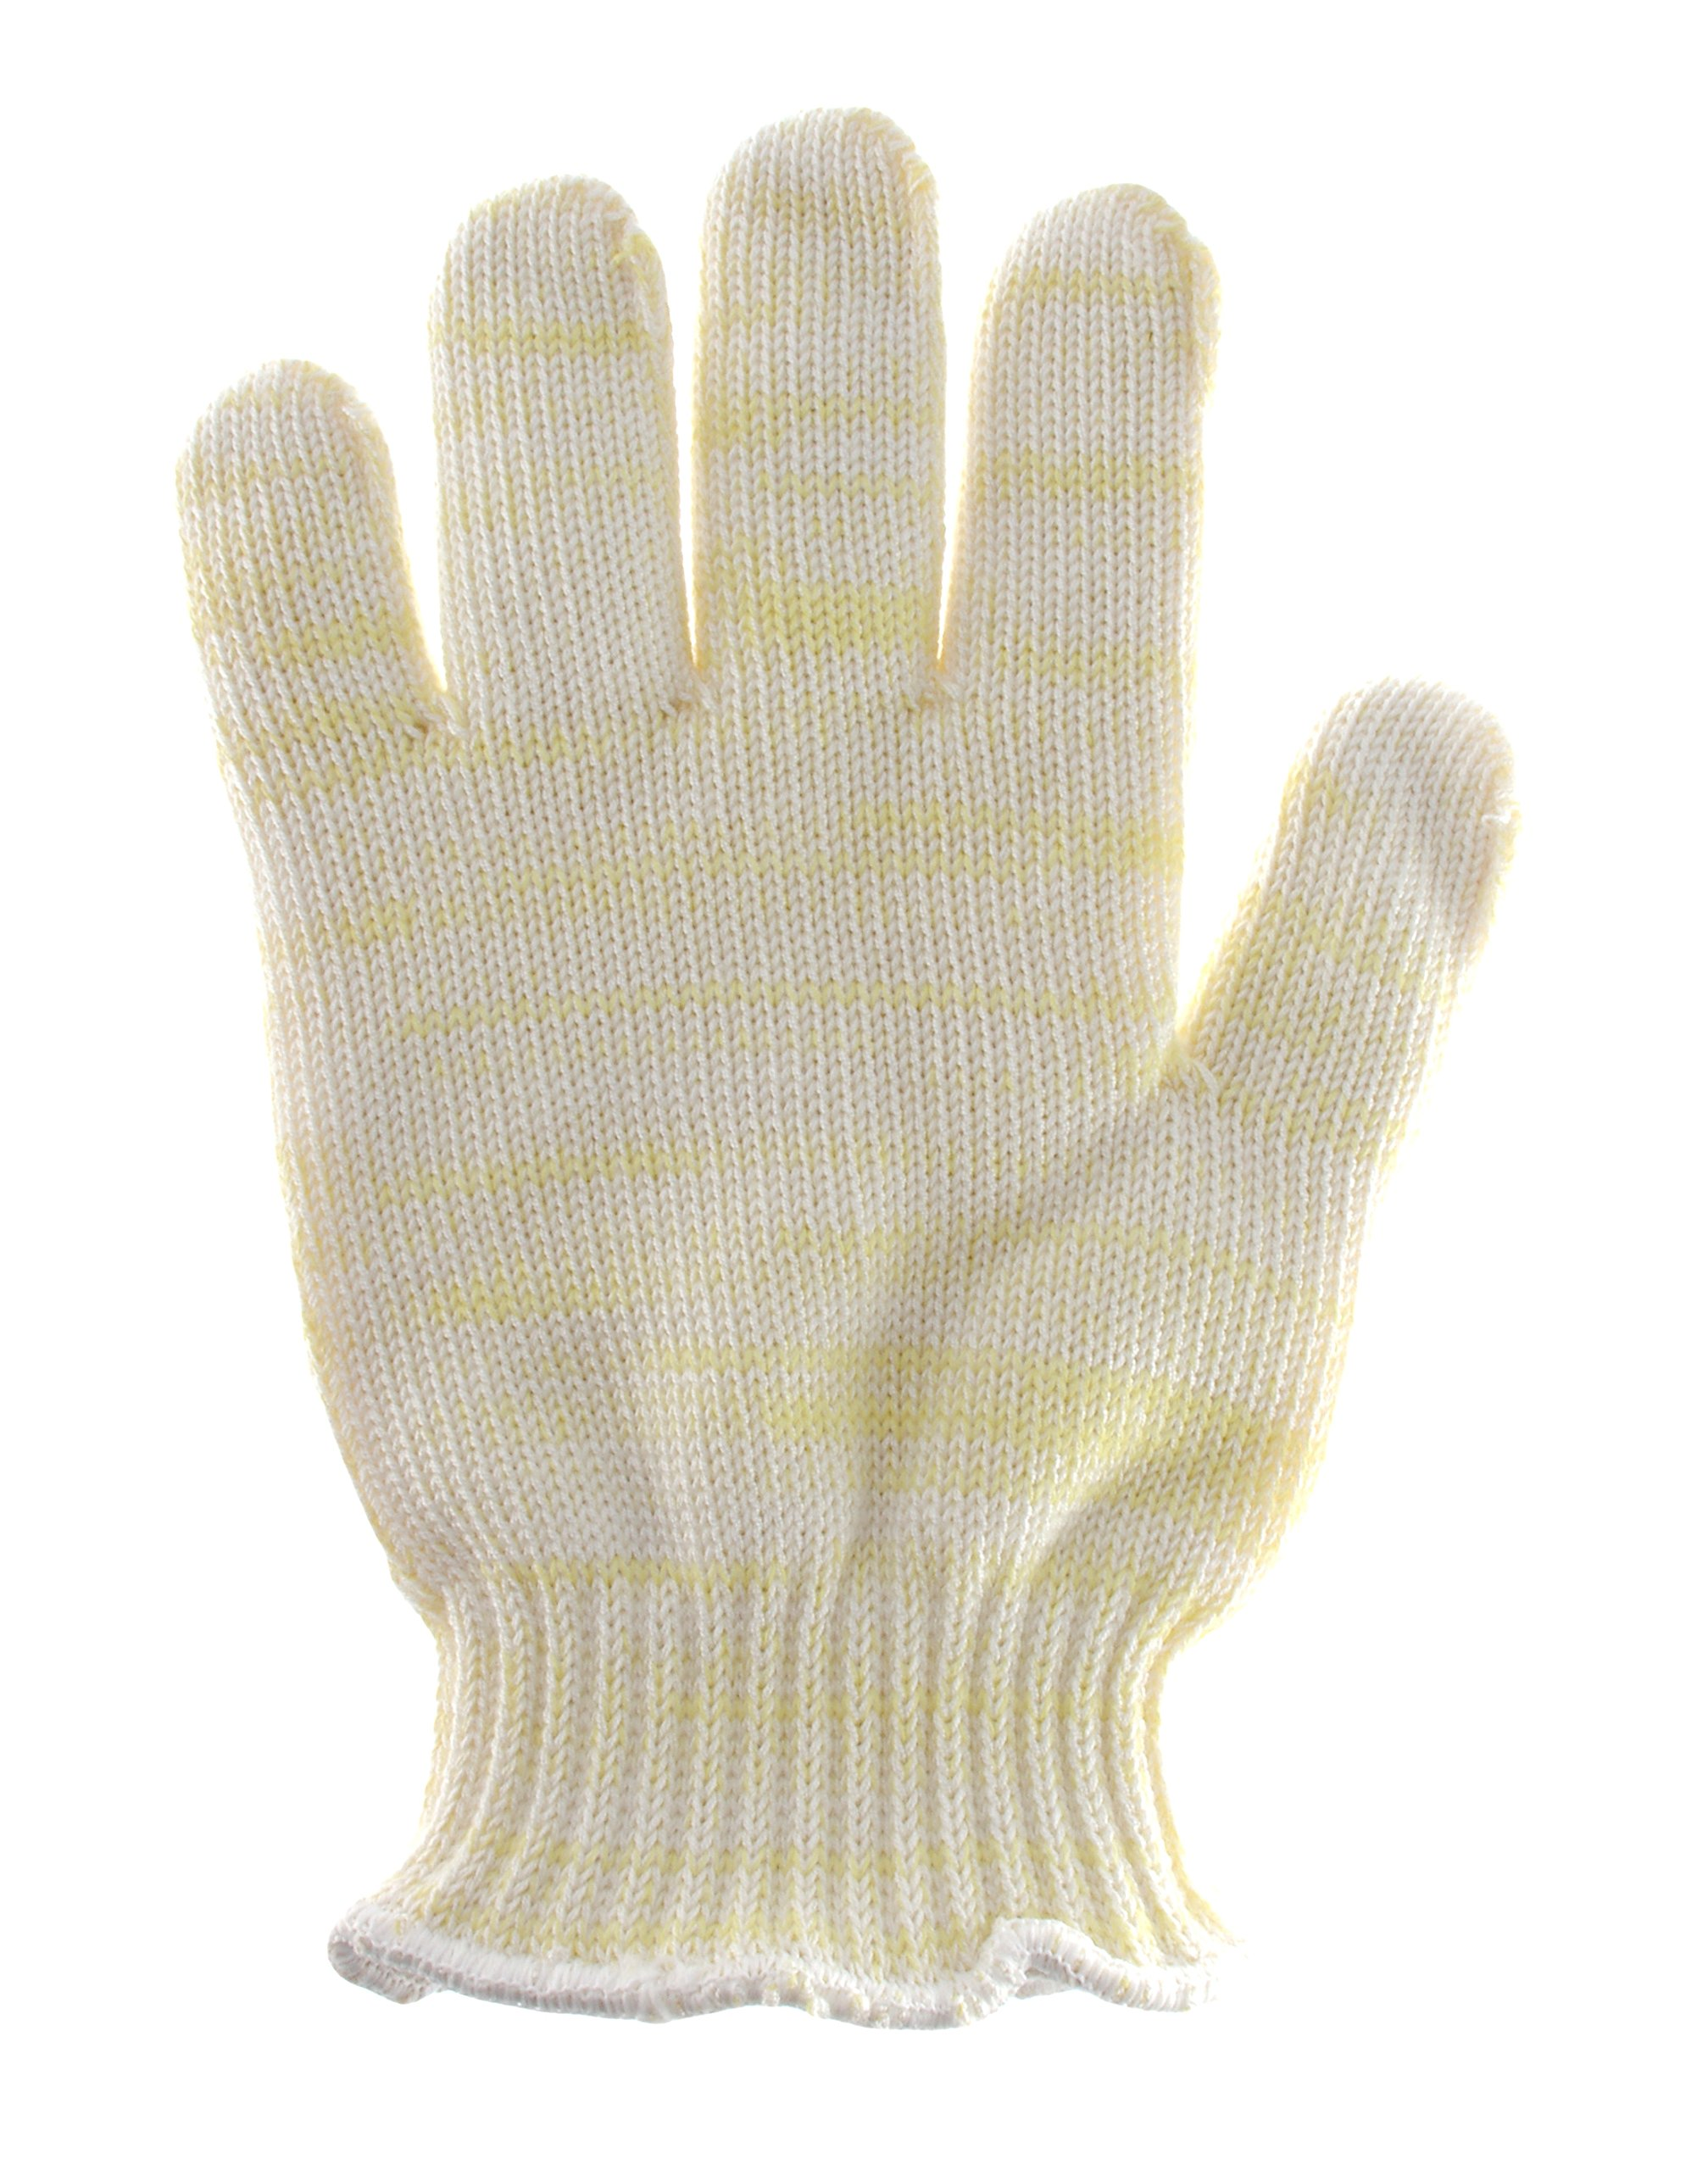 Oven Glove by HotStuff Chef. Made in the USA. Absolutely The Best. Professional Grade. Cut, Flame and Heat Resistant by Hotstuff Chef (Image #3)